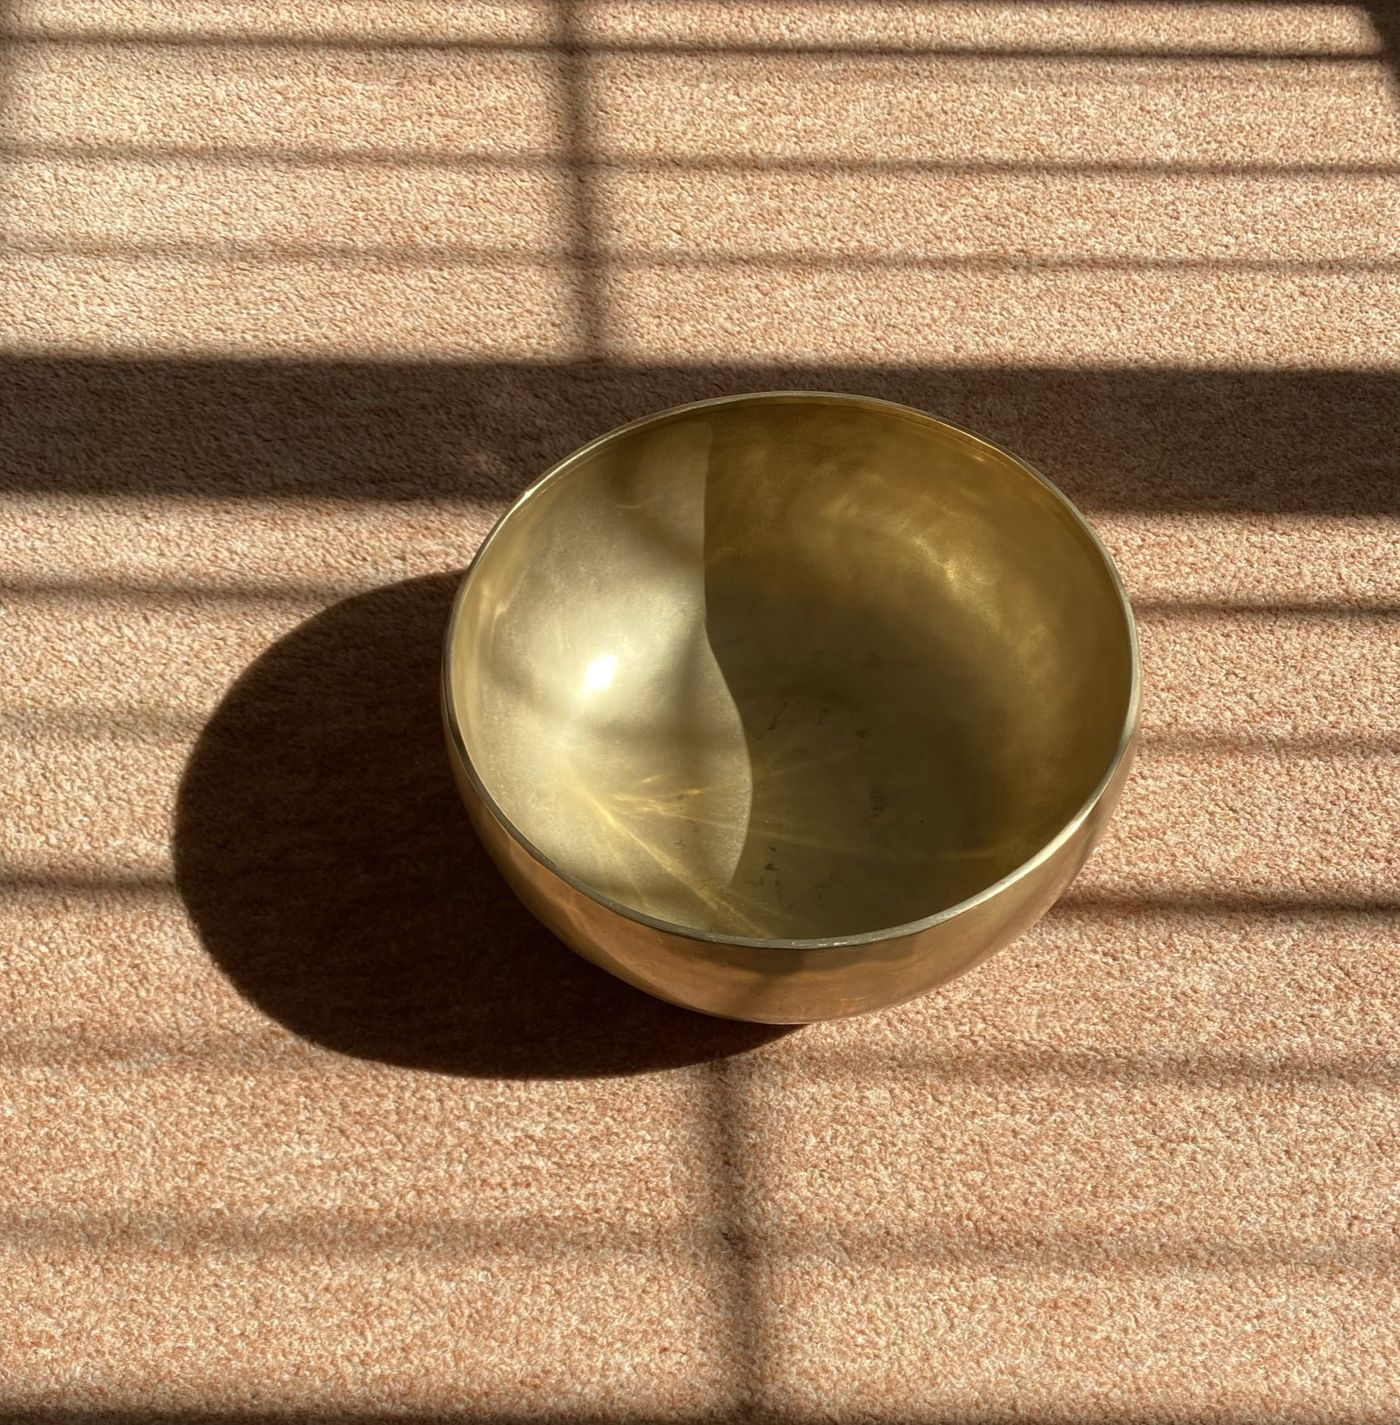 Taking time to zone out of your outer world and focus your awareness on your inner world ✨ the vibrational frequencies of the singing bowls, drum and chimes work together to restore and rebalance the cells, tissues and organs of the whole body ✨  https://bua.fit/class/BWOkJo5gHRUh